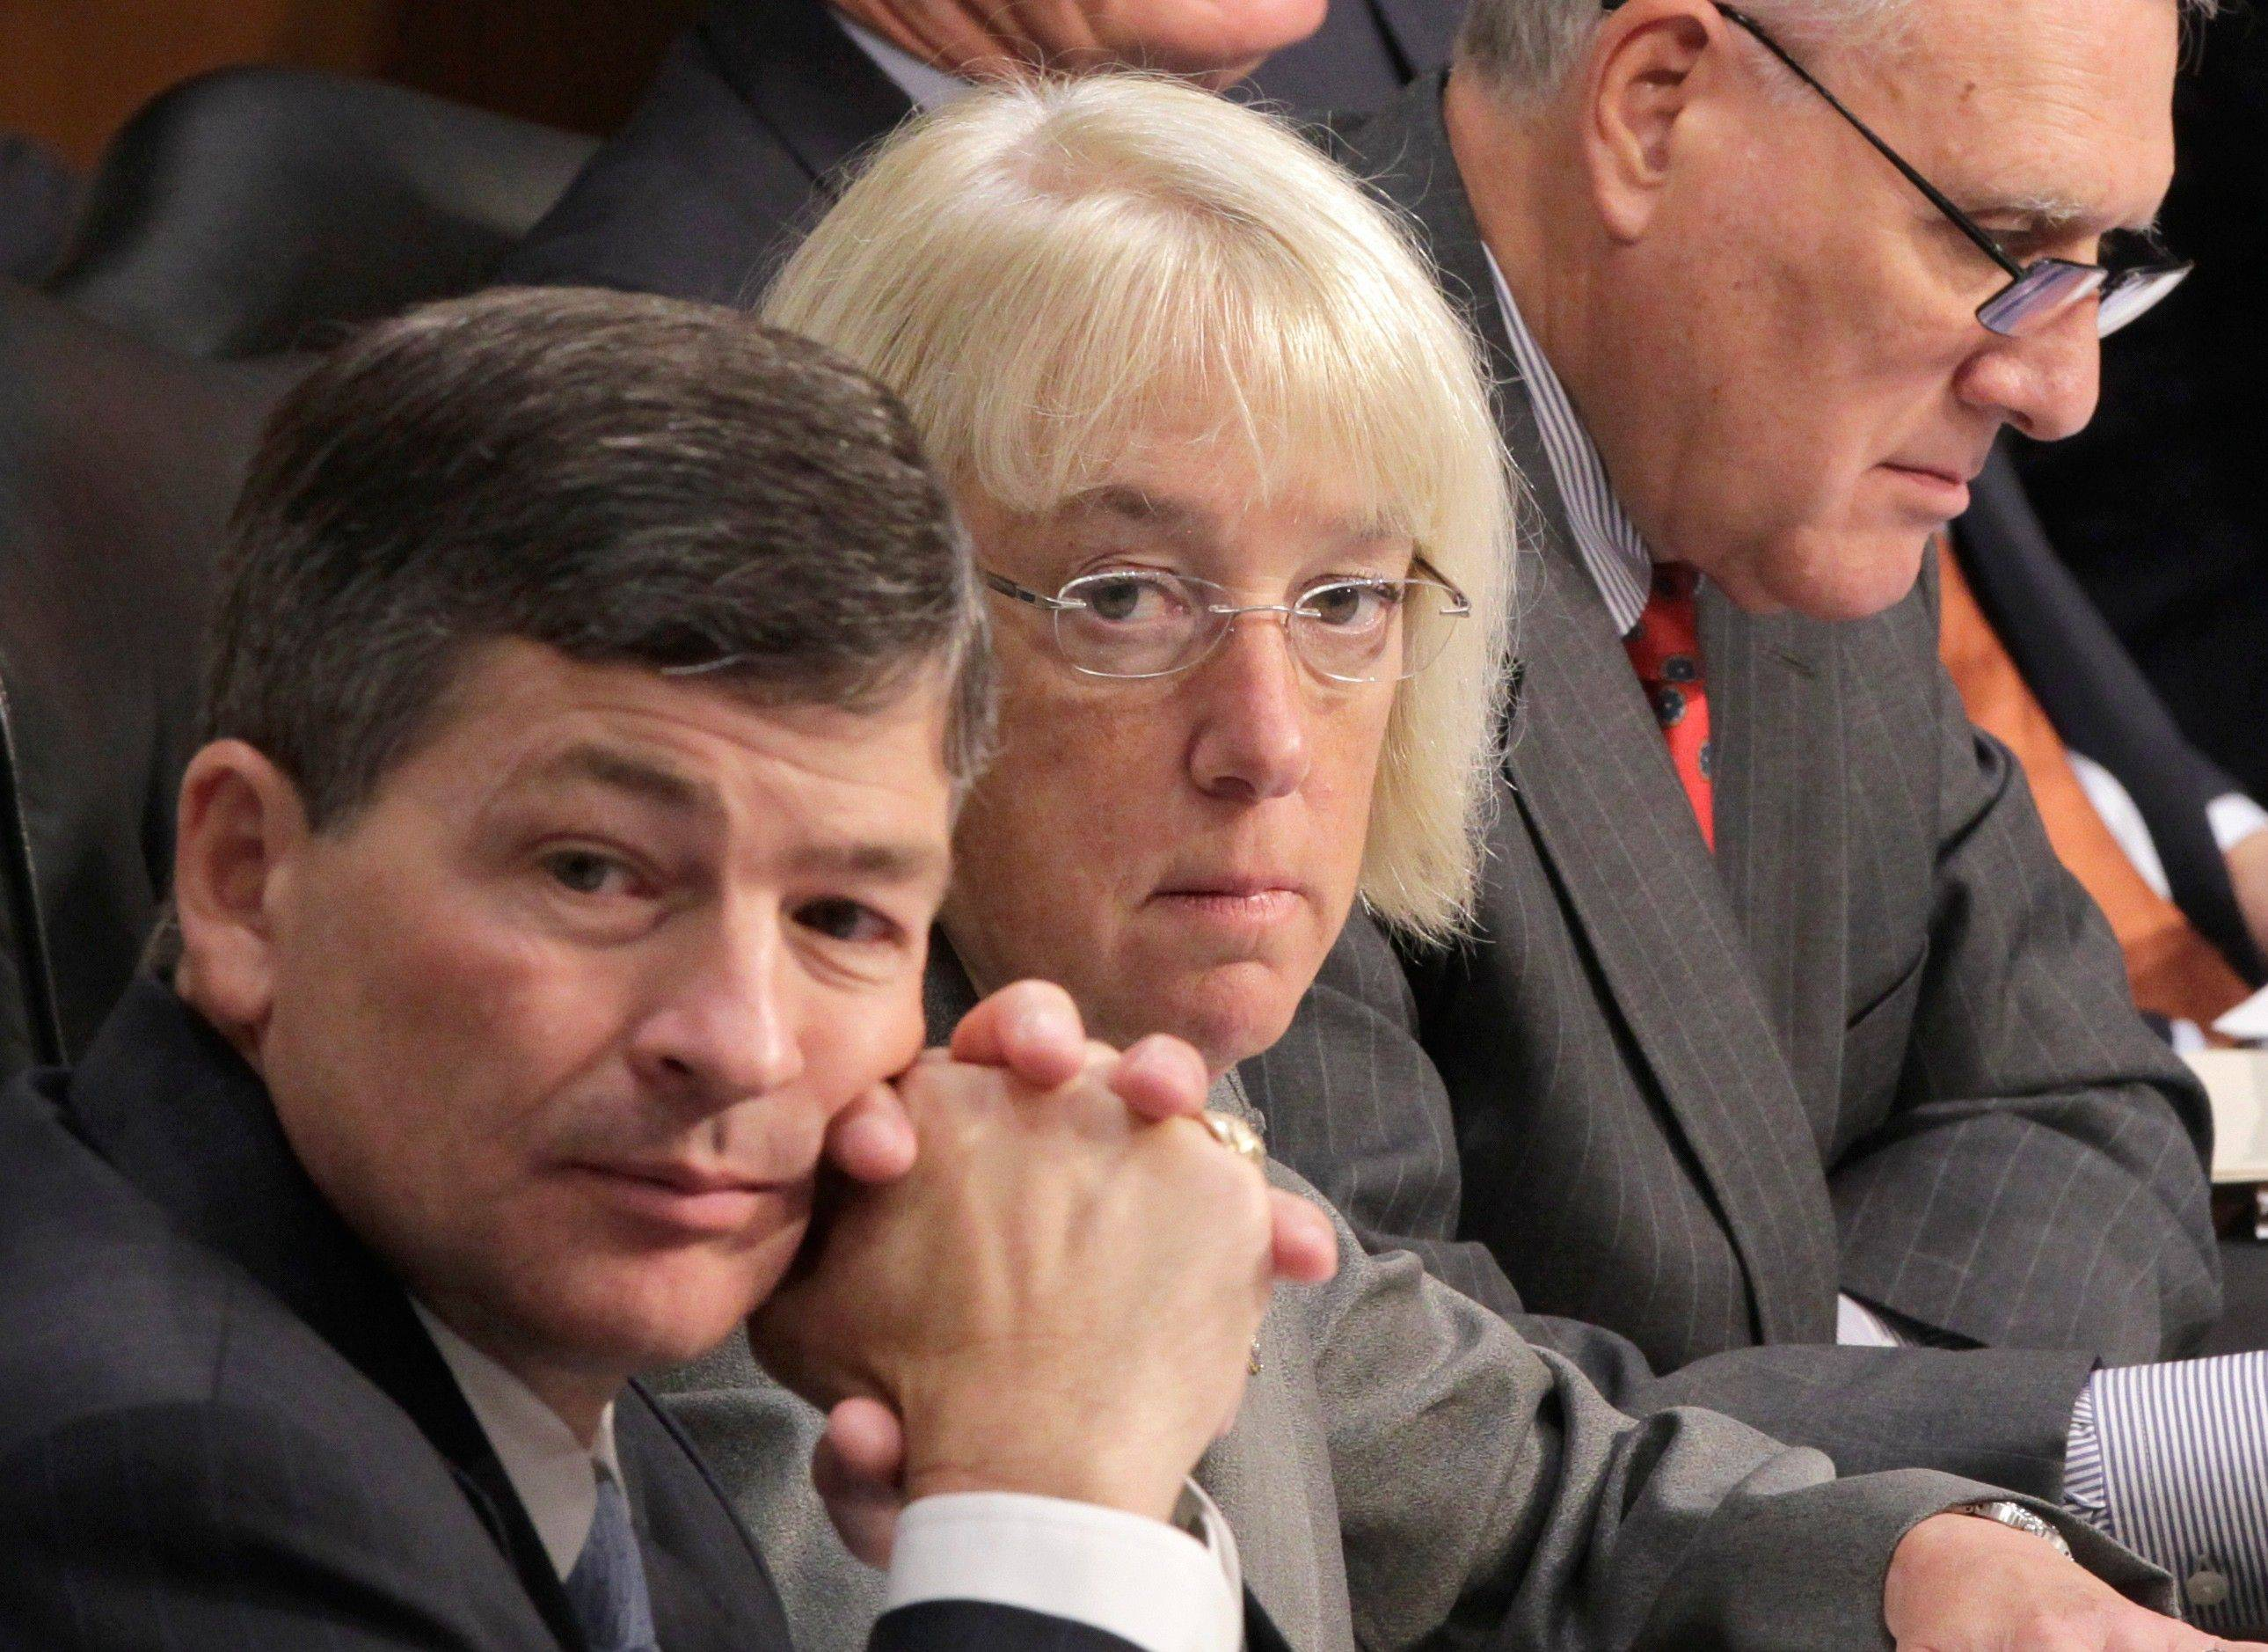 Joint Select Committee on Deficit Reduction Co-Chairs Rep. Jeb Hensarling, left, and Sen. Patty Murray, center, listen as Congressional Budget Office Director Douglas Elmendorf testifies before the committee on Capitol Hill Tuesday.